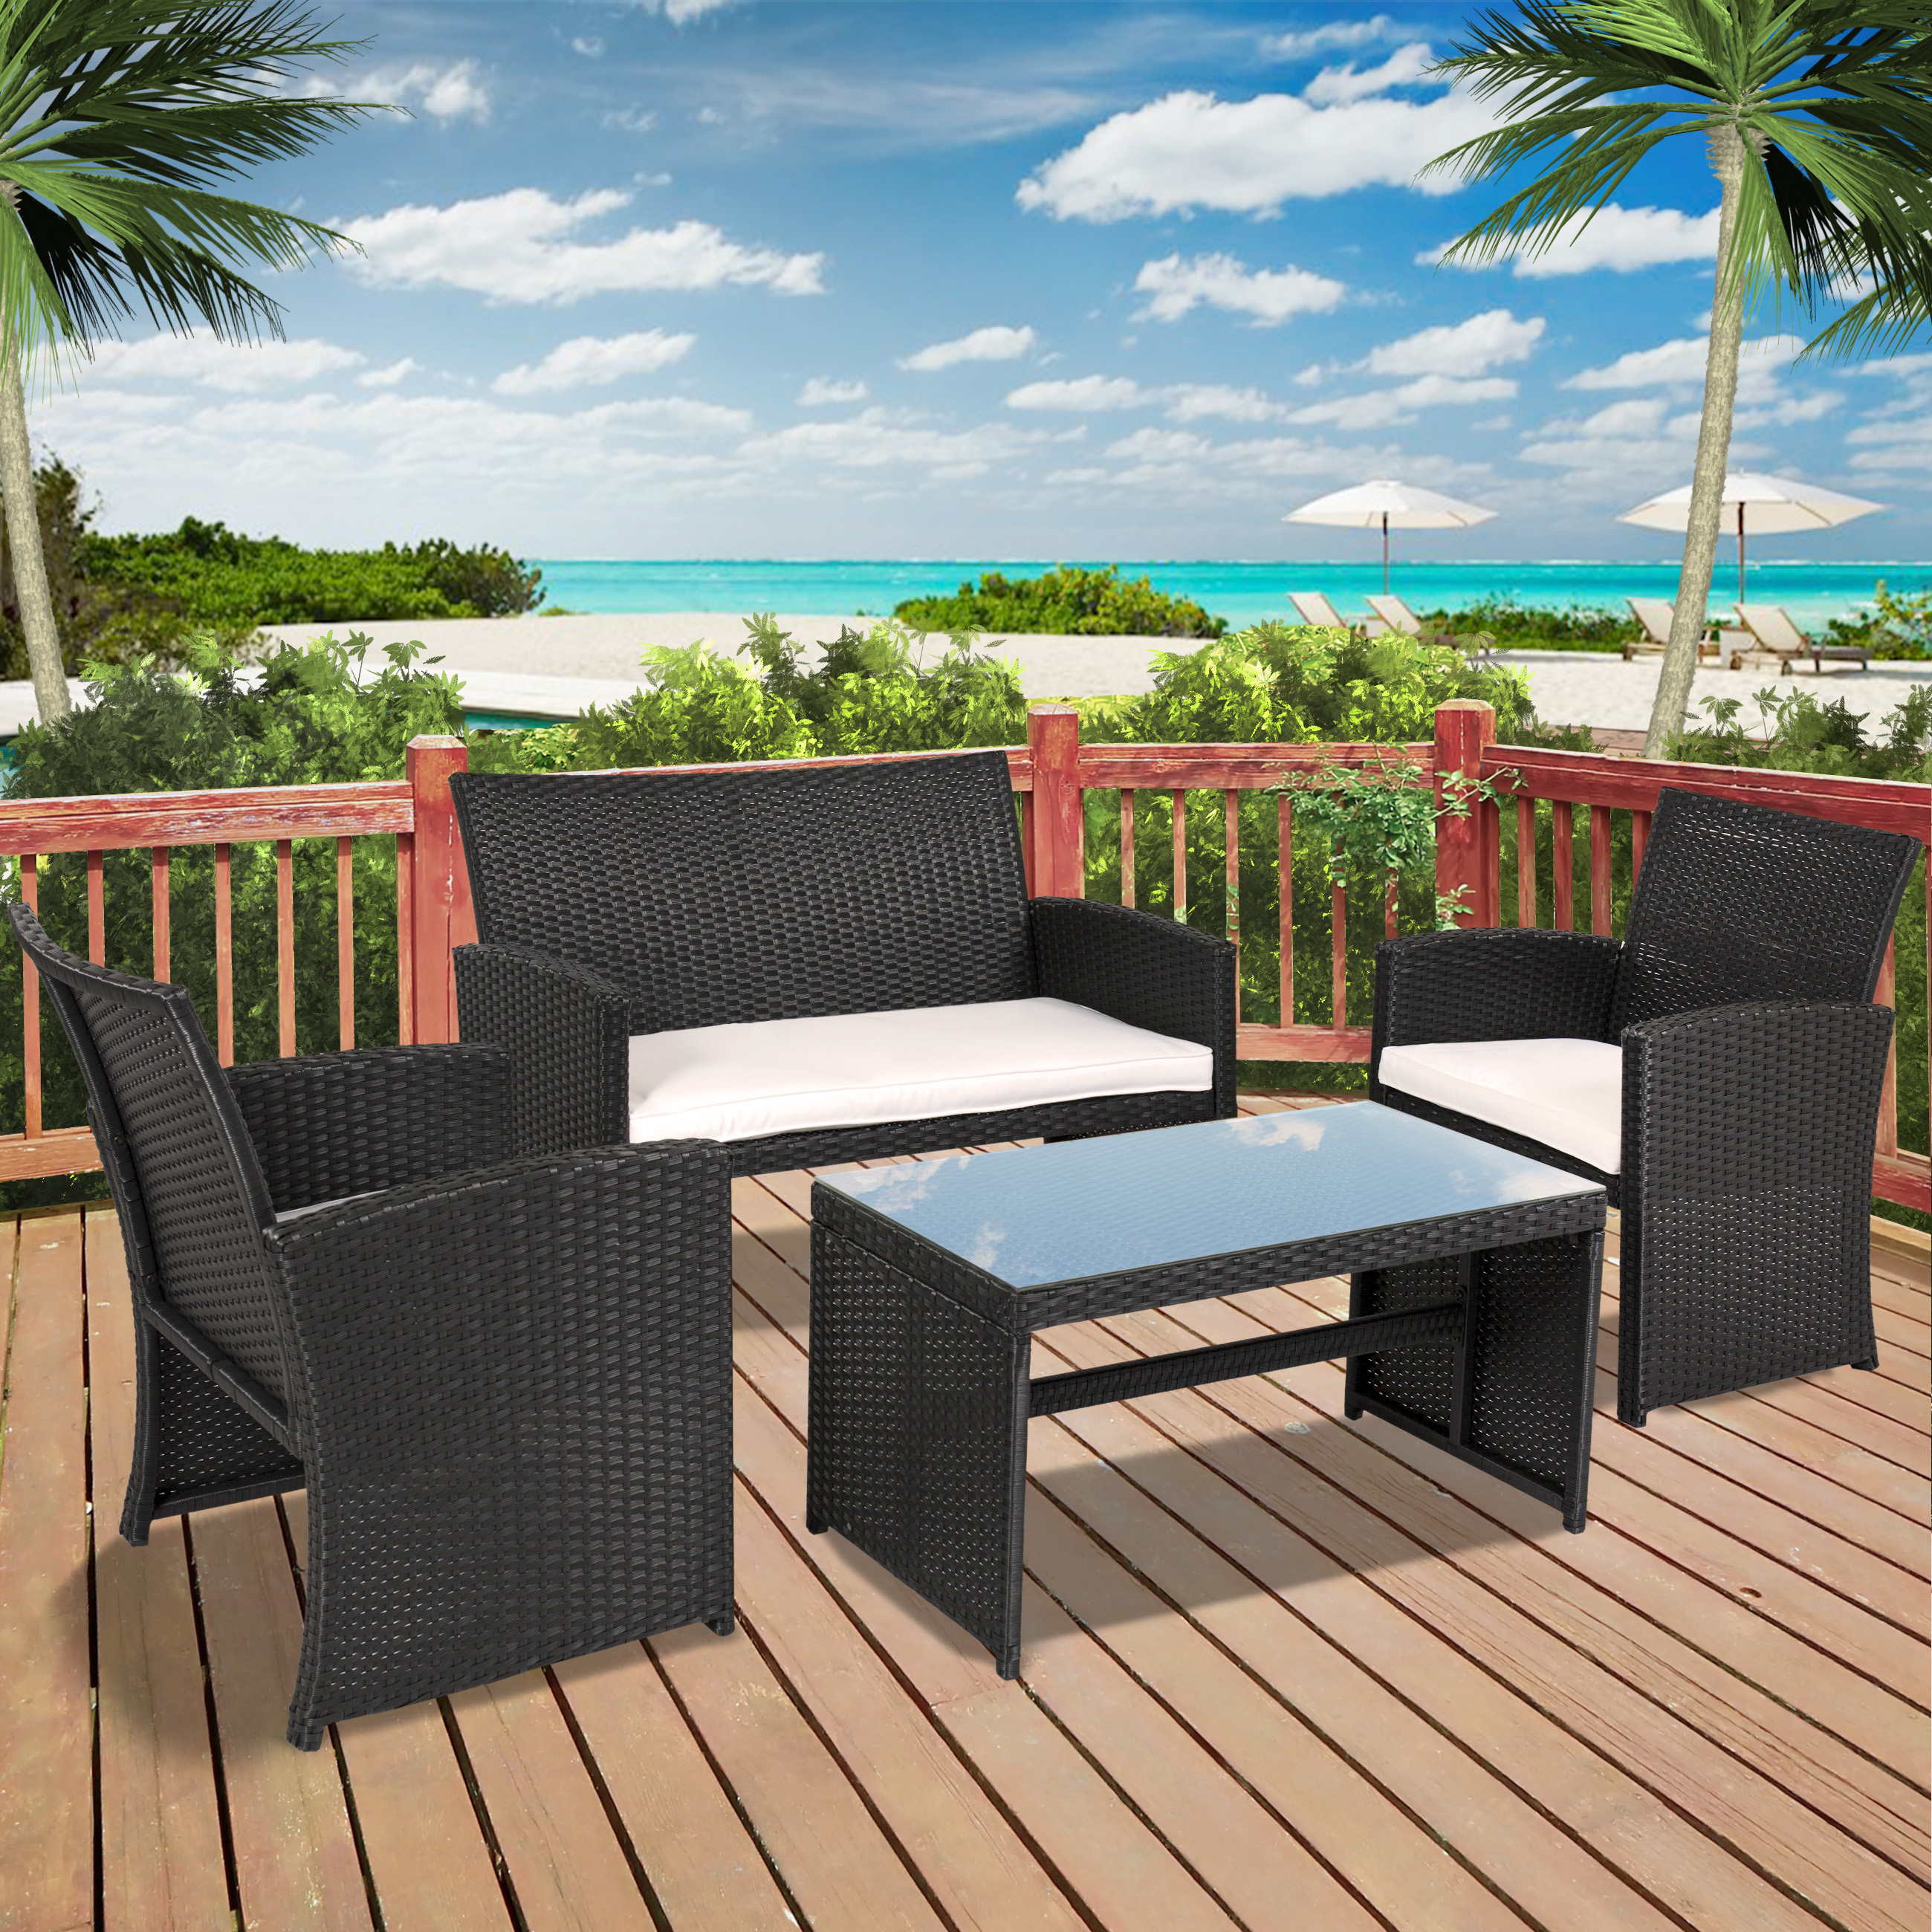 Best Choice Products 4-Piece Wicker Patio Furniture Set w/ Tempered Glass 3 Sofas Table Cushioned Seats - Black - Walmart.com & Best Choice Products 4-Piece Wicker Patio Furniture Set w/ Tempered ...